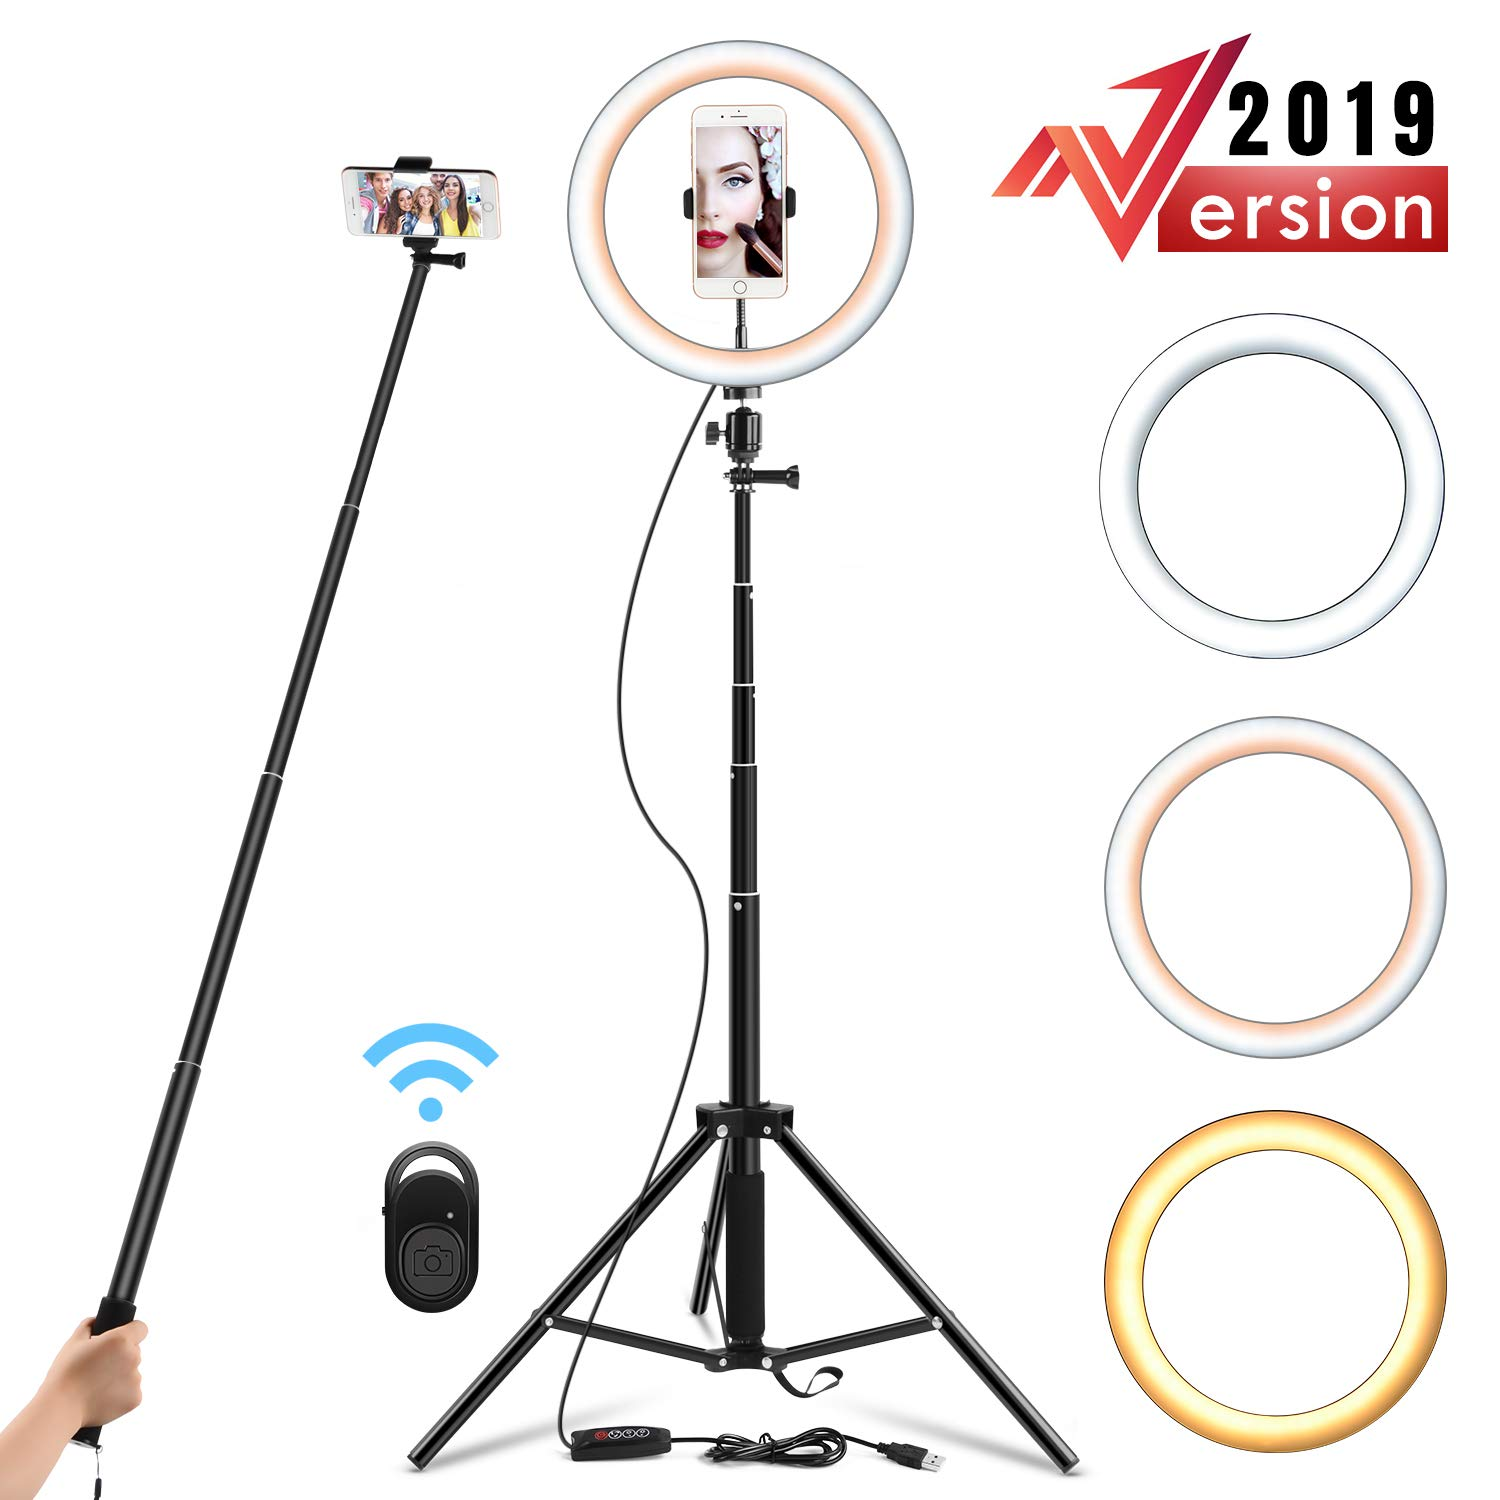 Yesker 10.2'' Selfie Ring Light Dimmable with Tripod Stand & Cell Phone Holder, Mini Led Camera Ringlight for Live Streaming/Makeup/YouTube Video/Photography, Remote Control